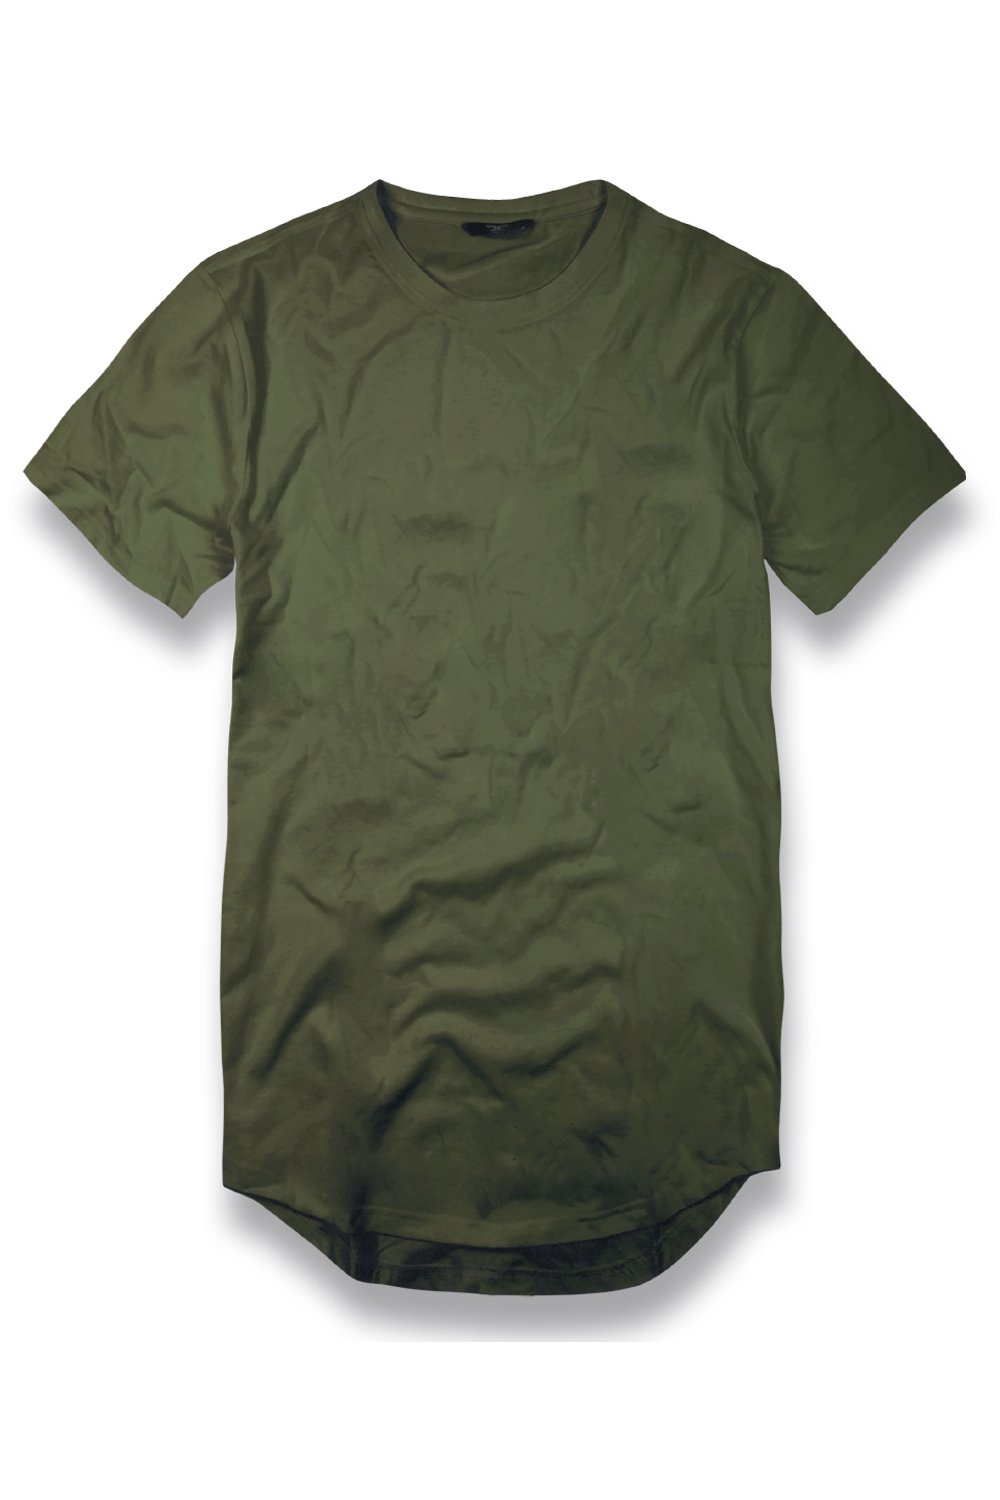 I like scallop t-shirts. This color 8a96668c493